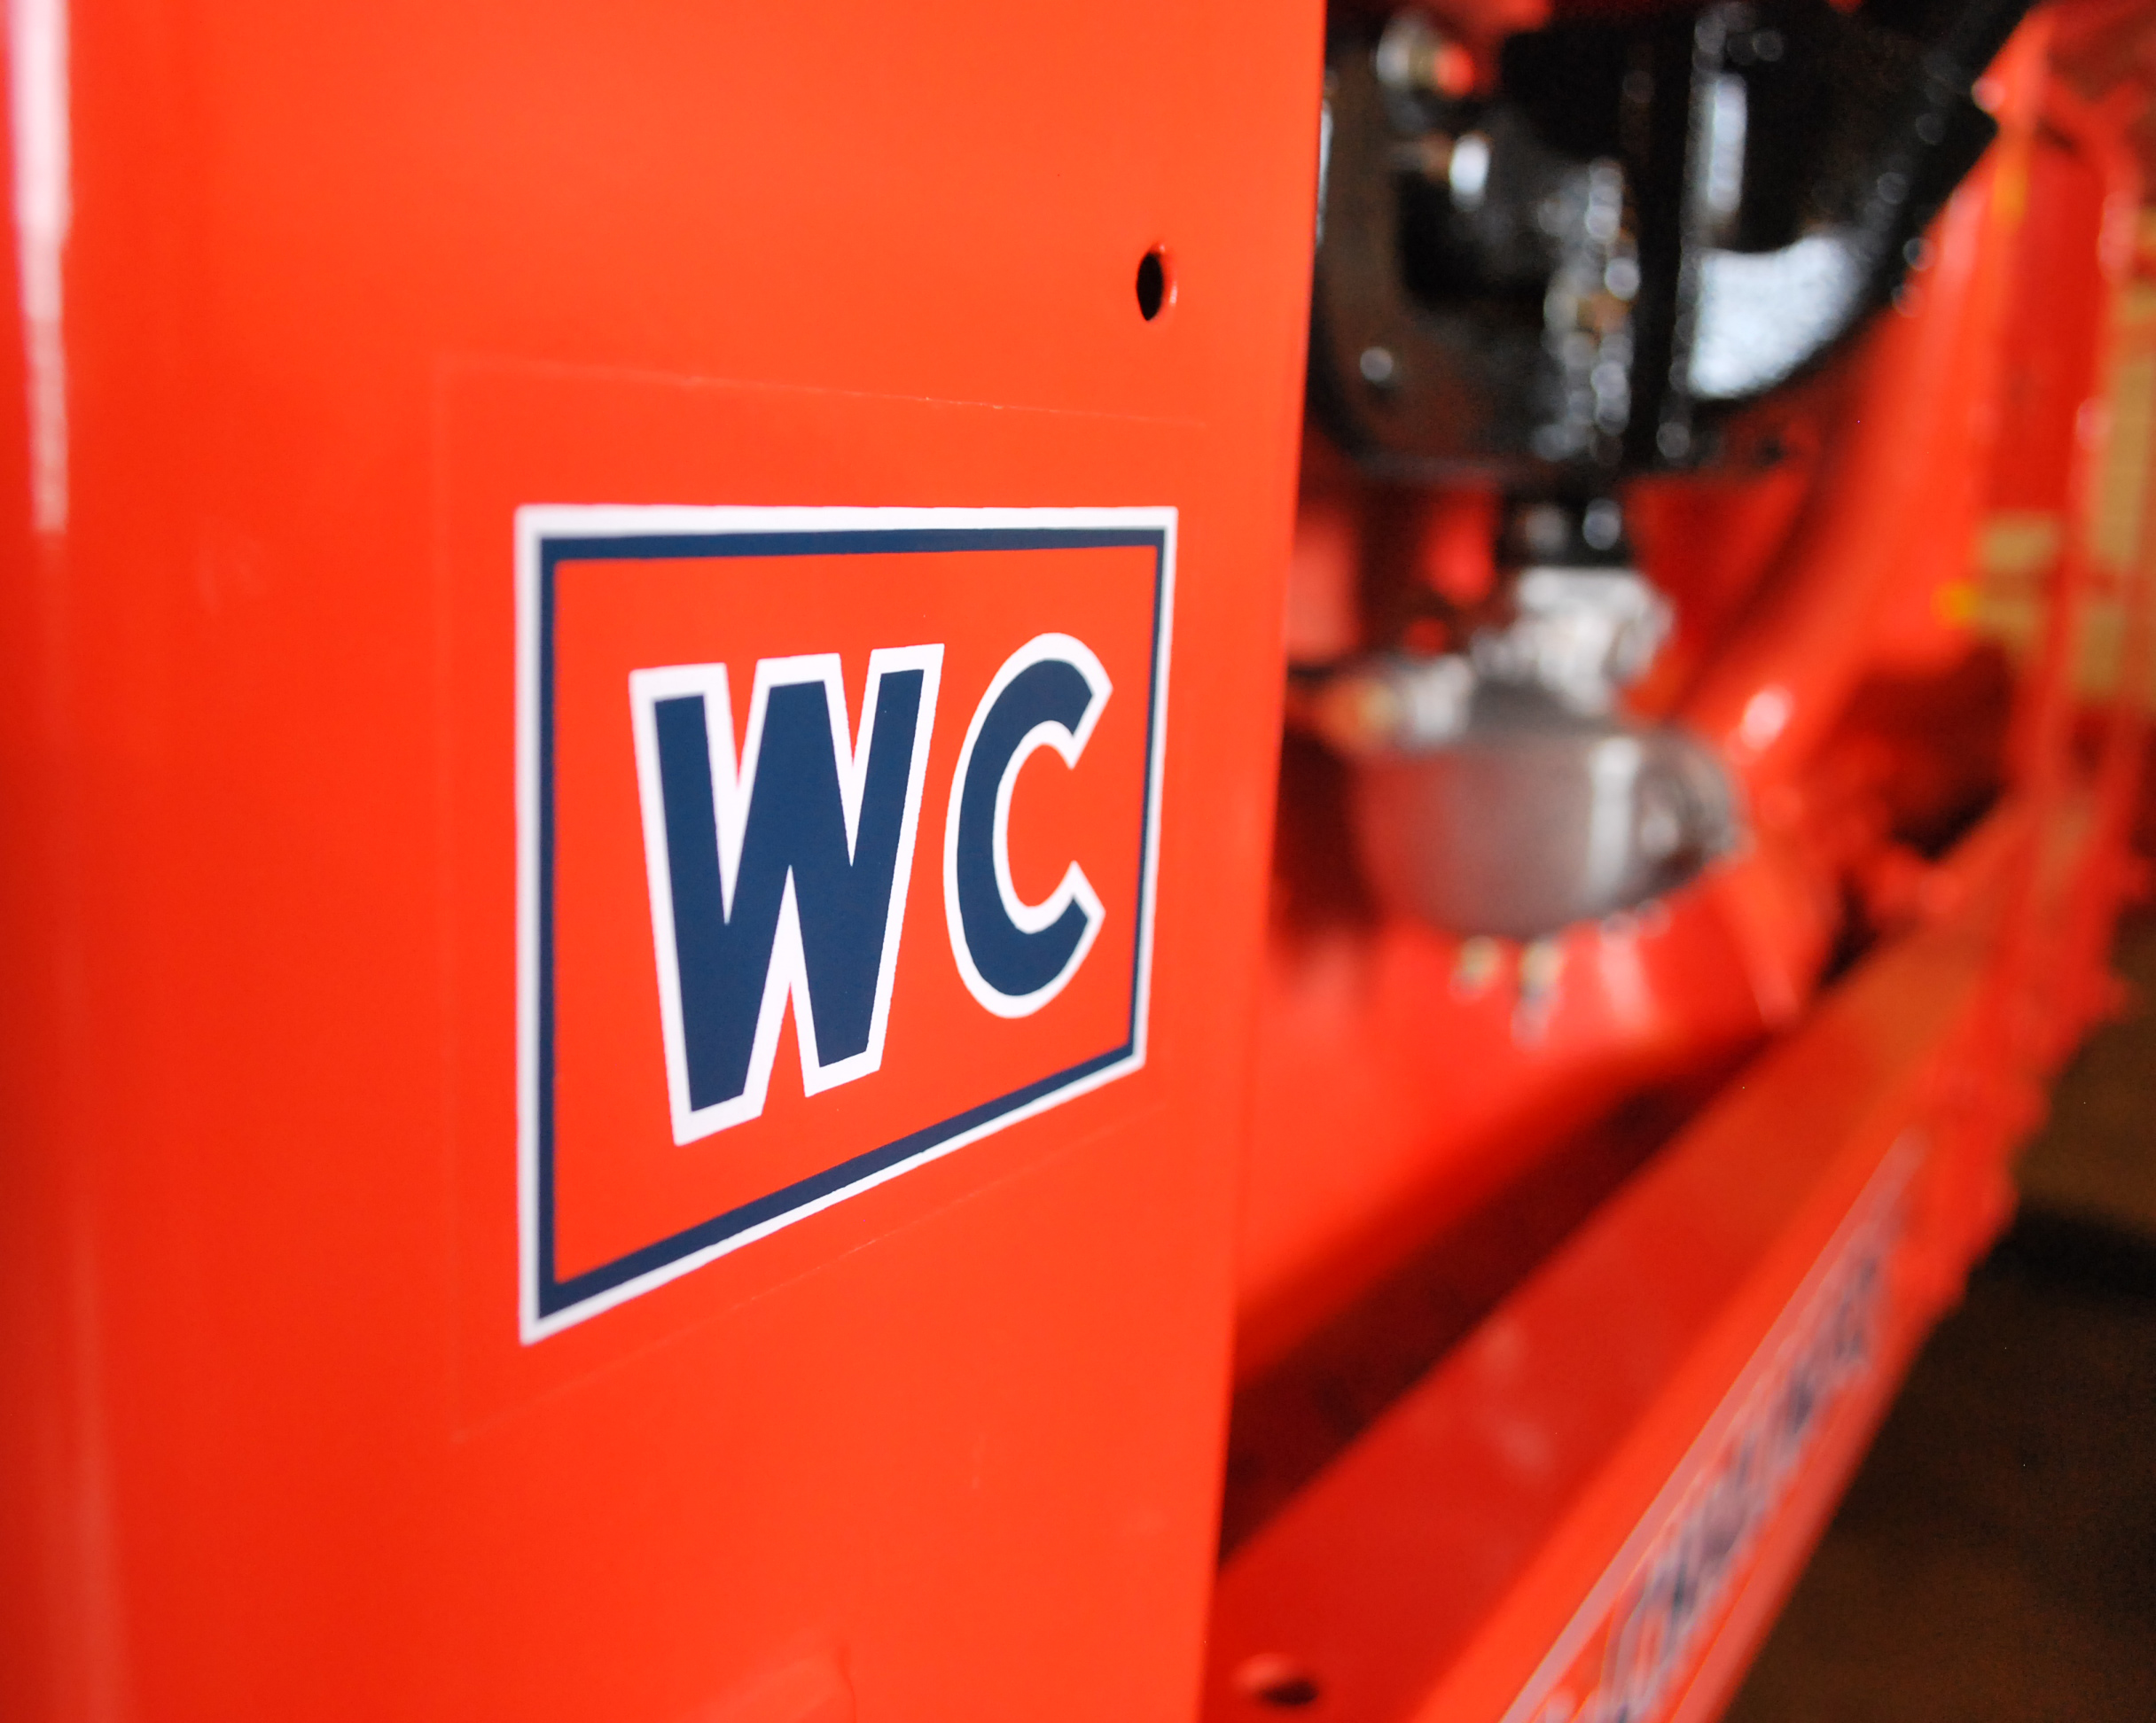 Several vintage tractors are display at the Larsen Tractor Test & Power Museum.